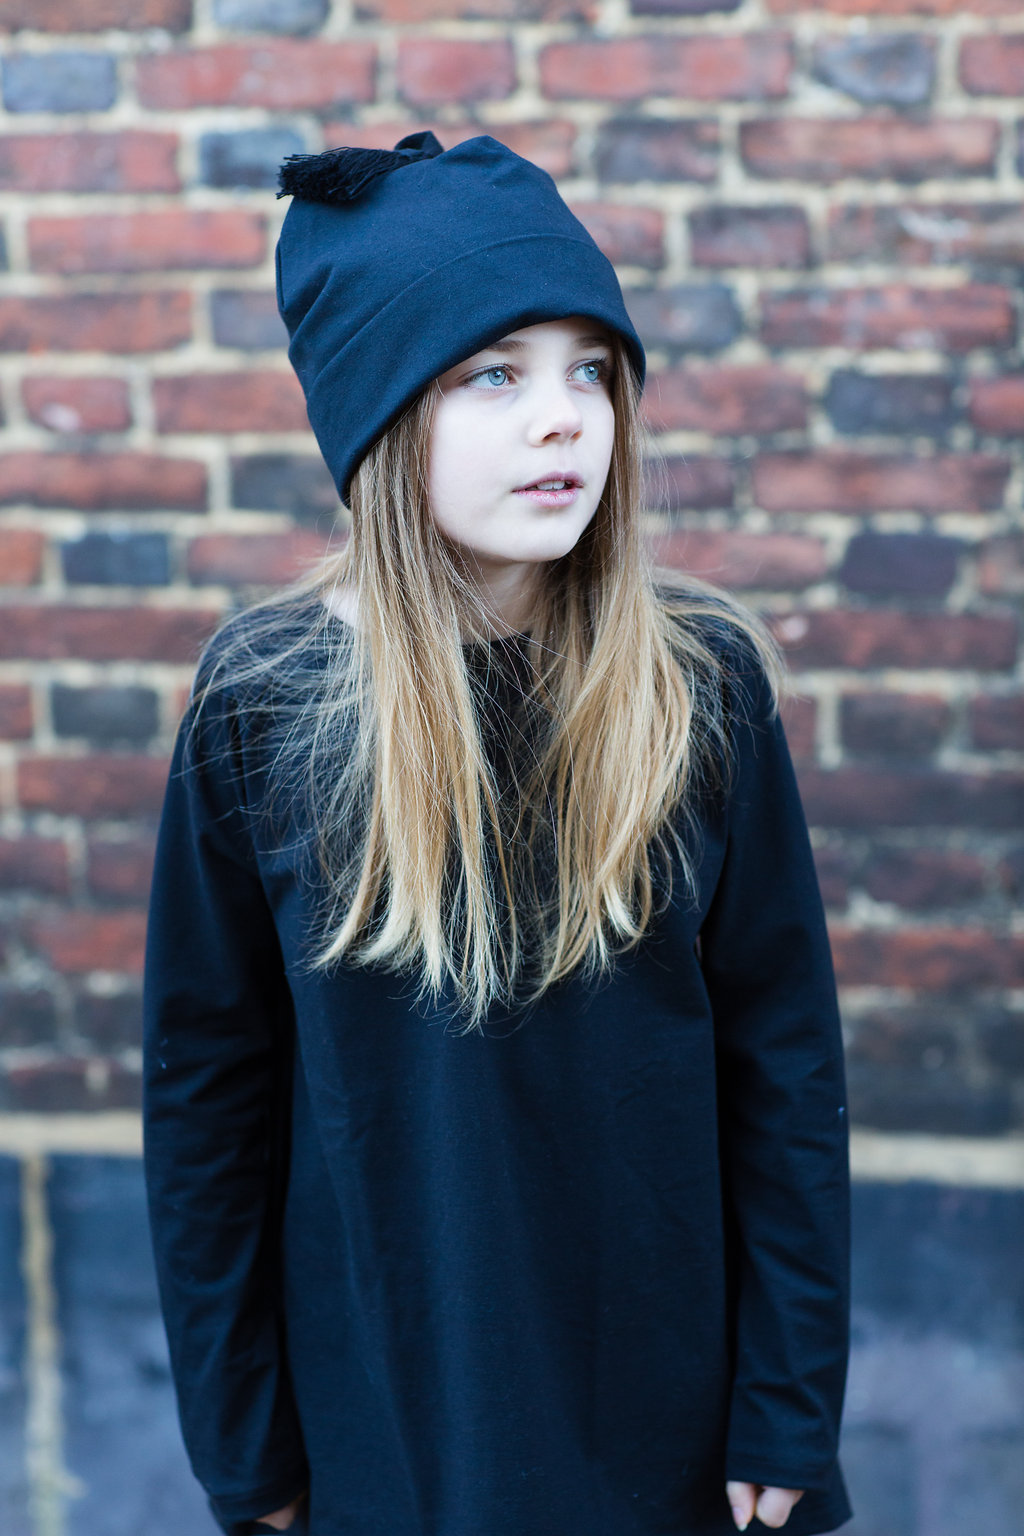 Papu organic cotton ethical easy to wear kids clothing